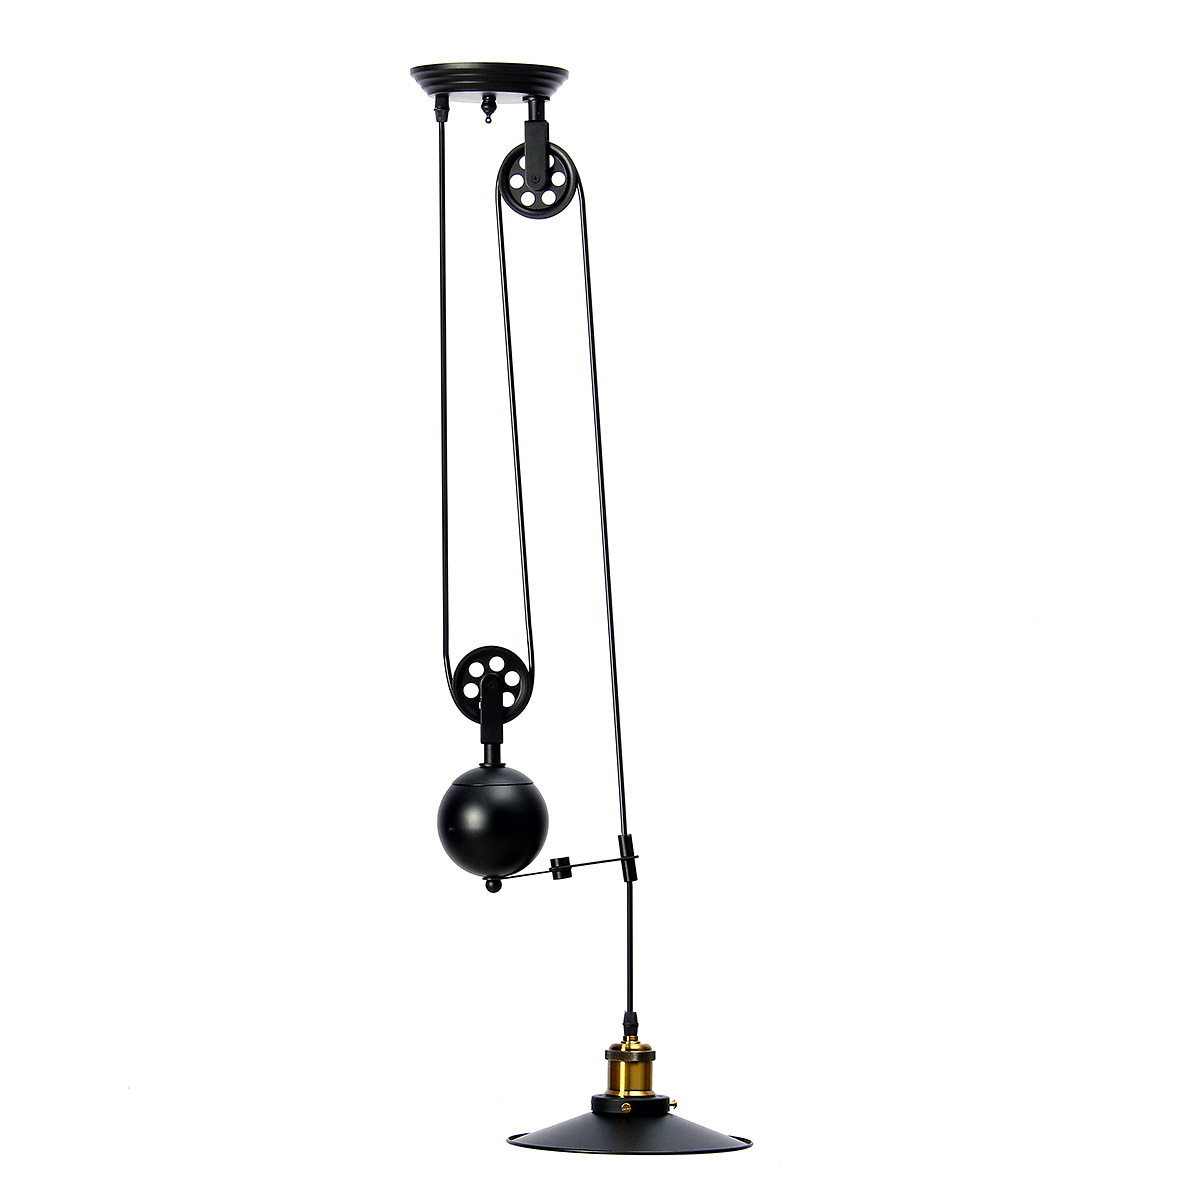 E27 Vintage Industrial Retro Hanging Ceiling Light